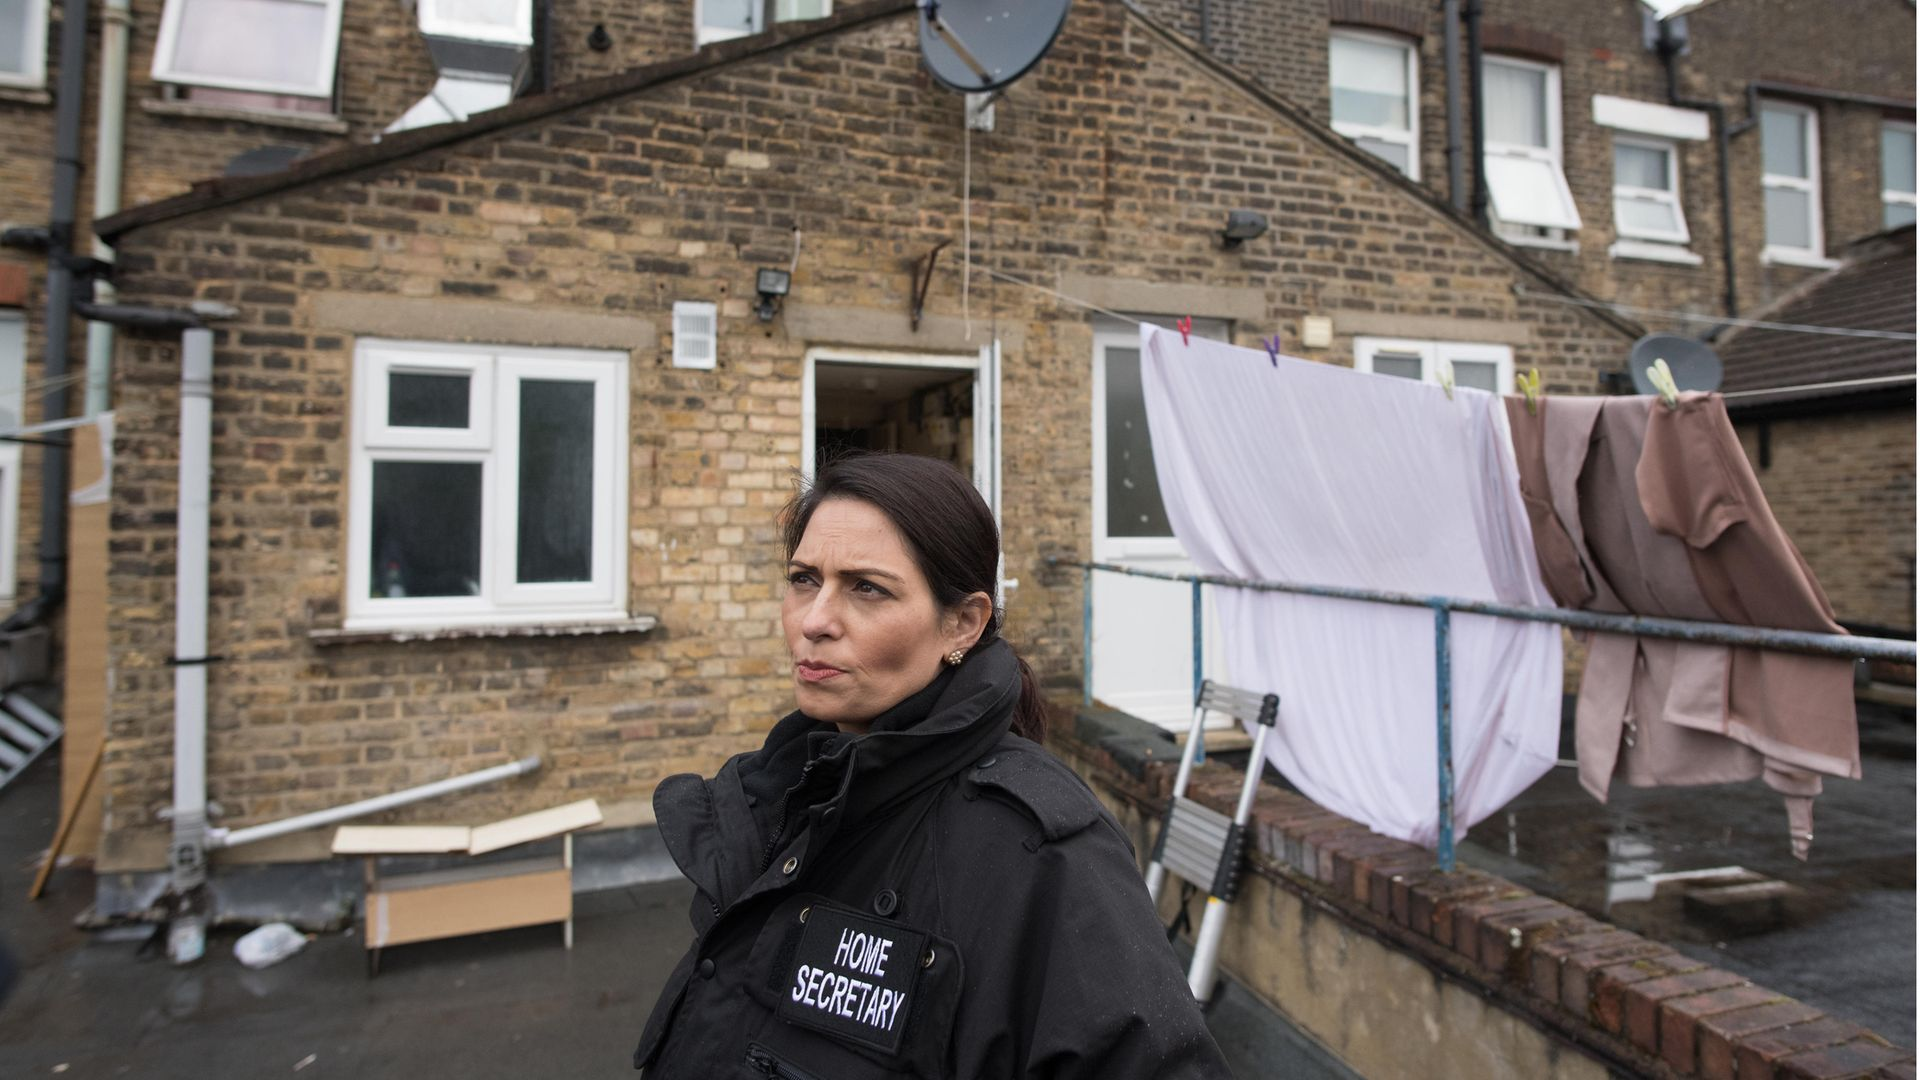 Home secretary Priti Patel during a National Crime Agency operation in east London, May 19, 2021 - Credit: Stefan Rousseau/PA Wire/PA Images